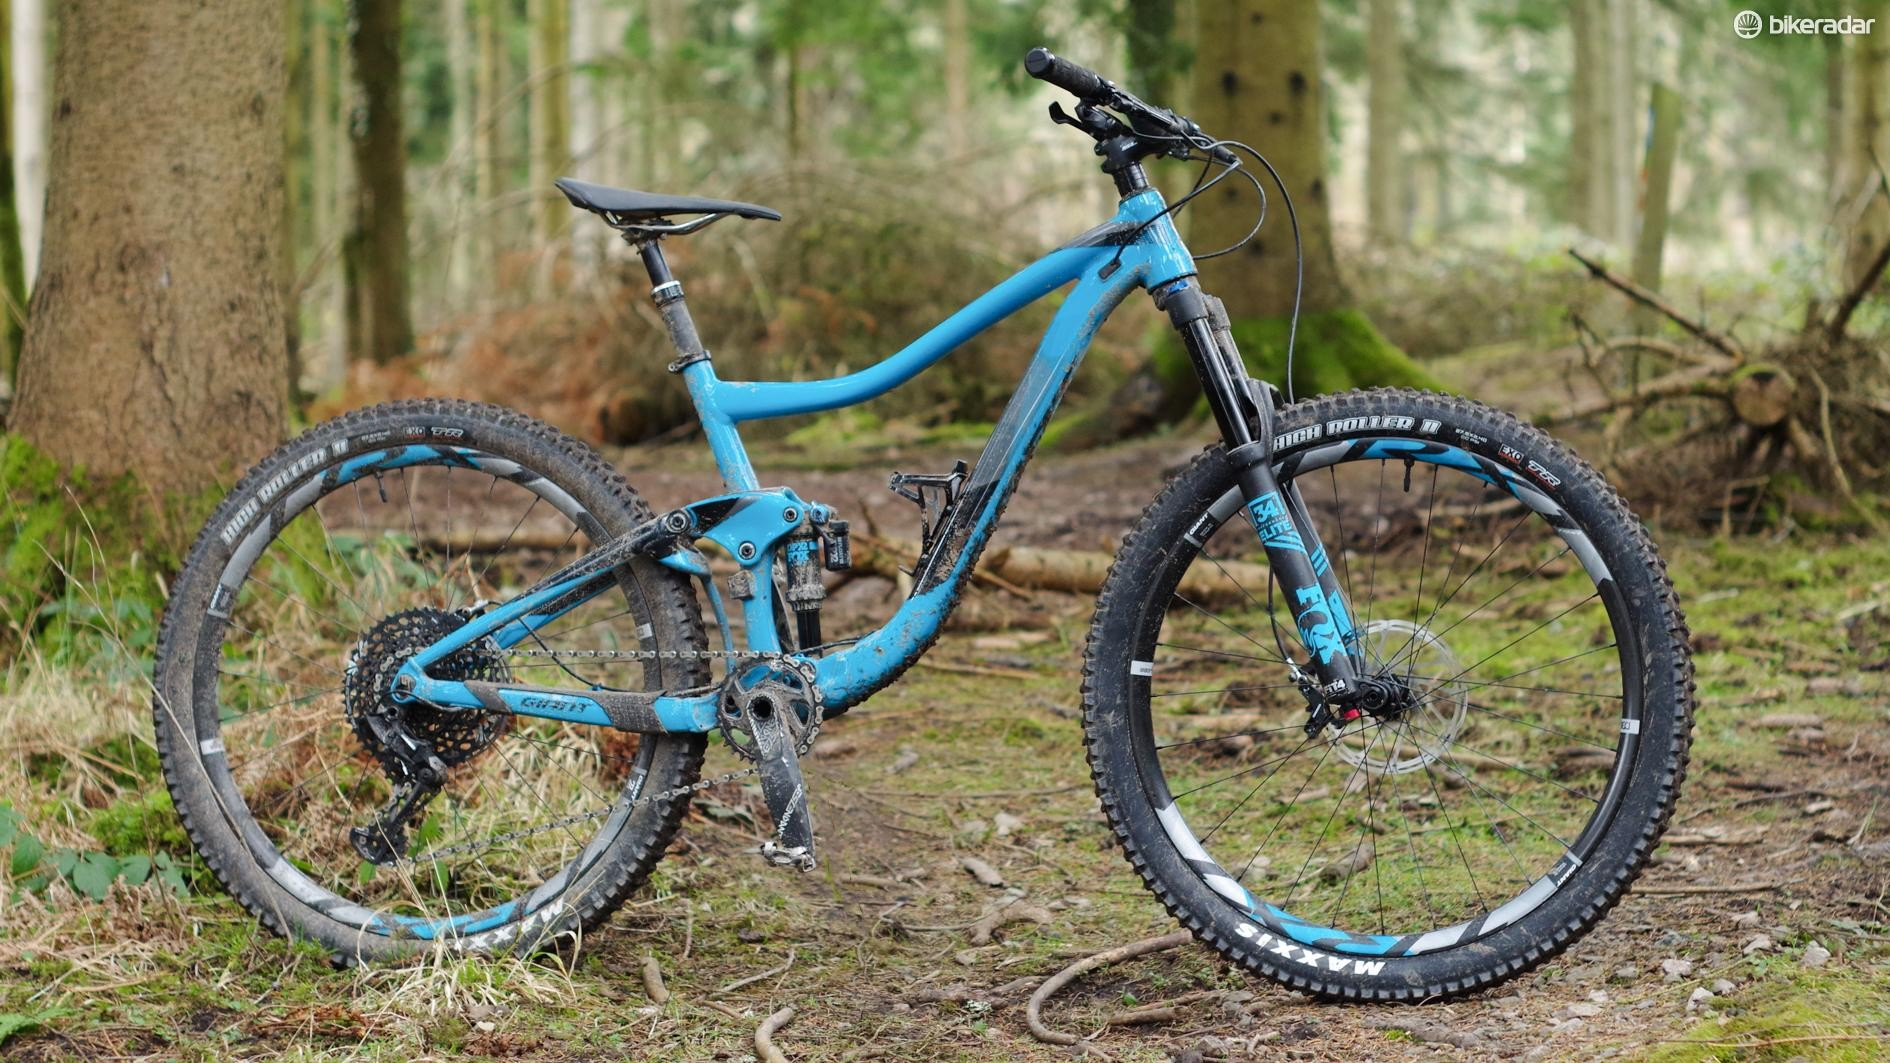 The Giant Trance 1 has an alloy frame and a big spec